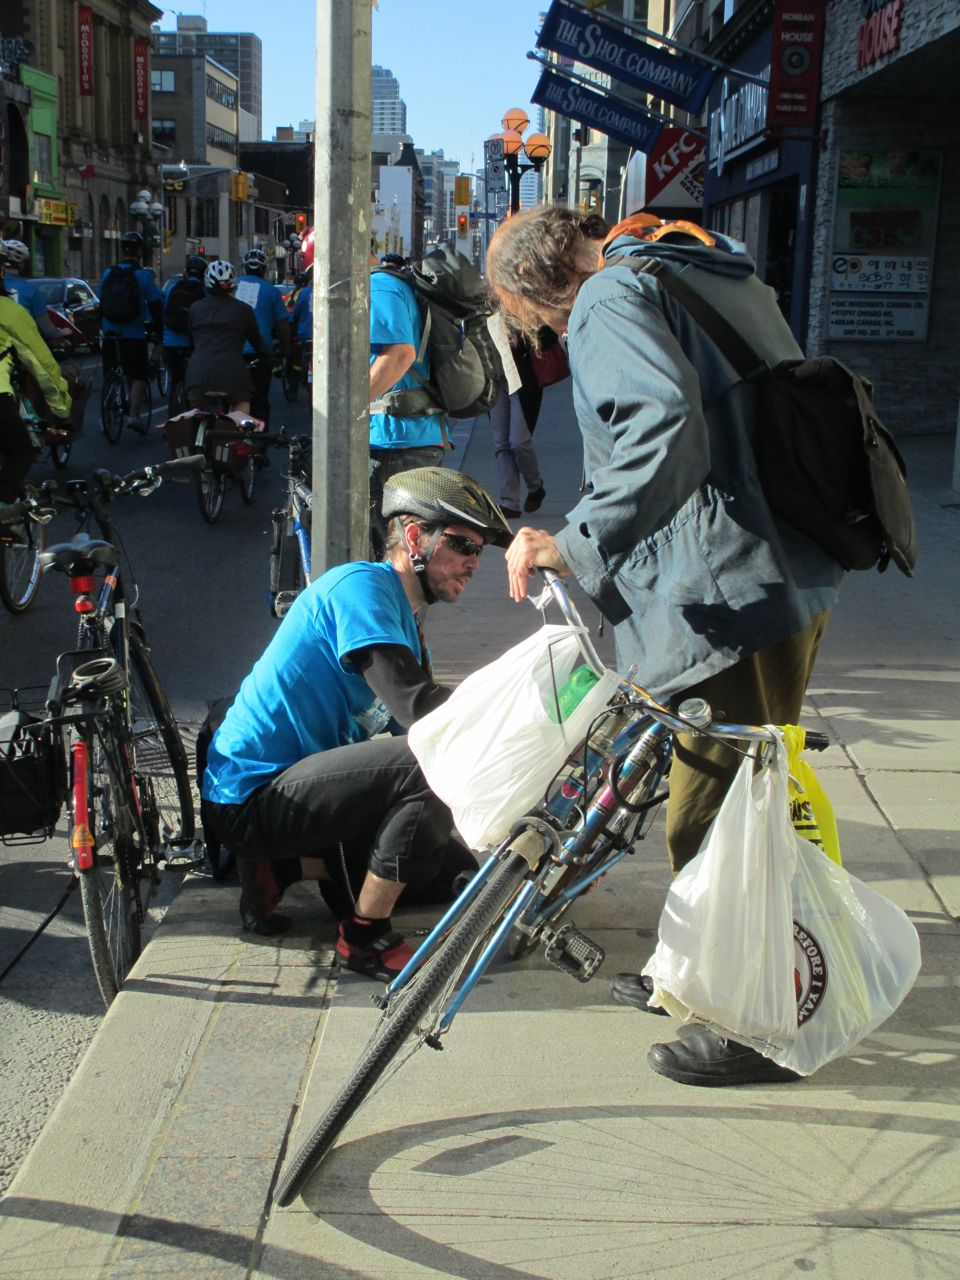 A cyclist helps repair a bike